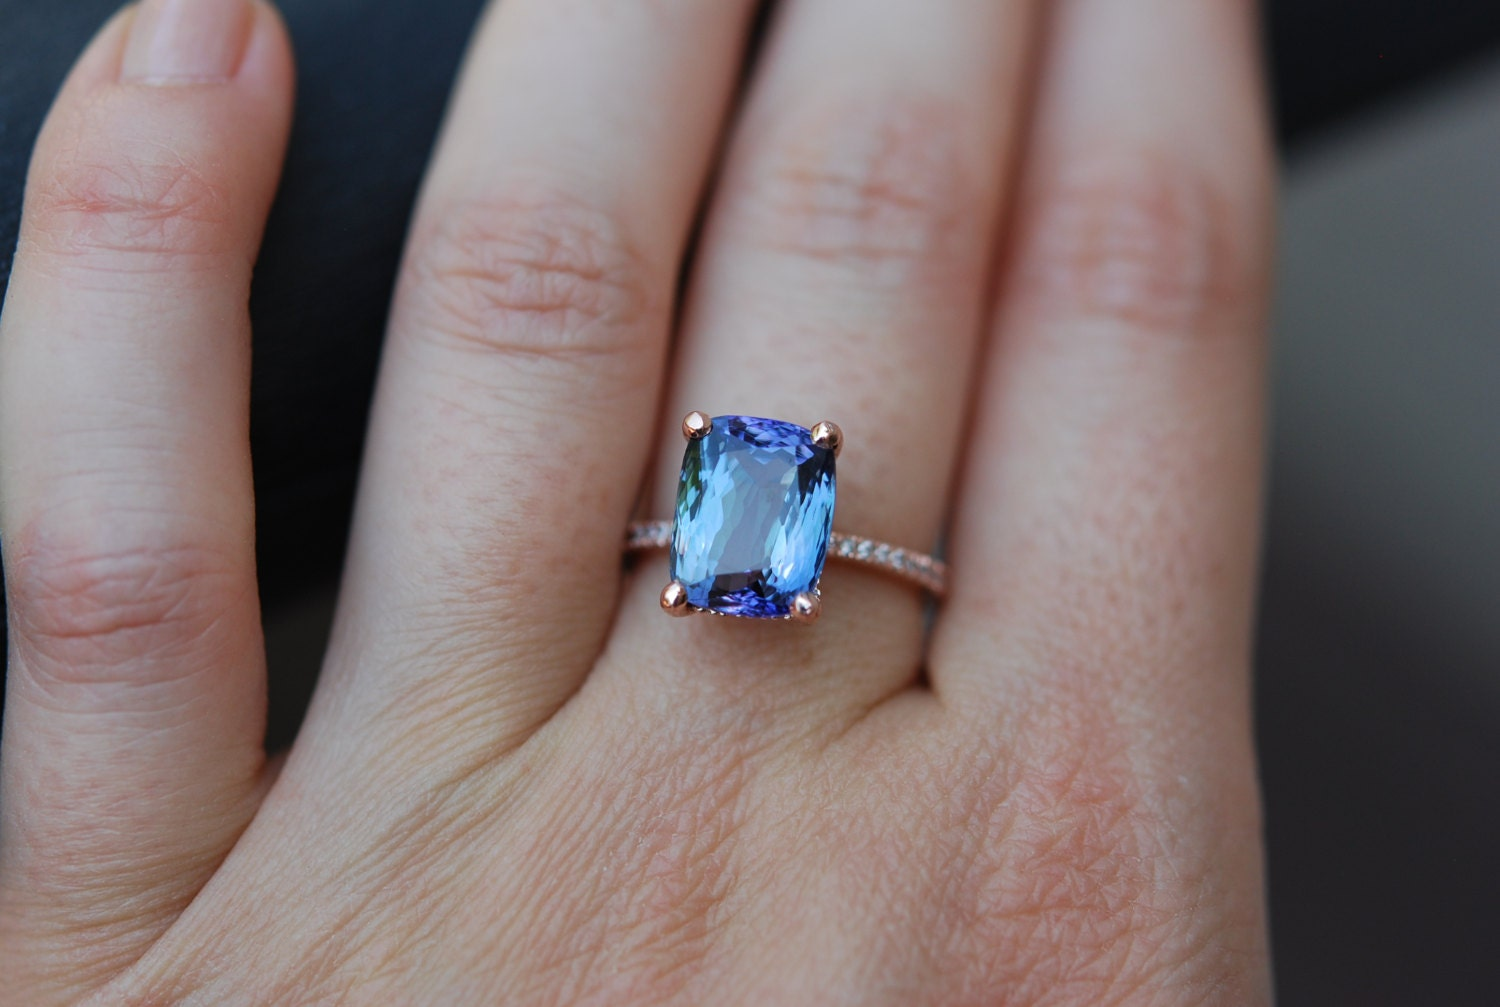 tanzanite ring rose gold engagement ring lavender blue teal tanzanite emarald cut engagement. Black Bedroom Furniture Sets. Home Design Ideas